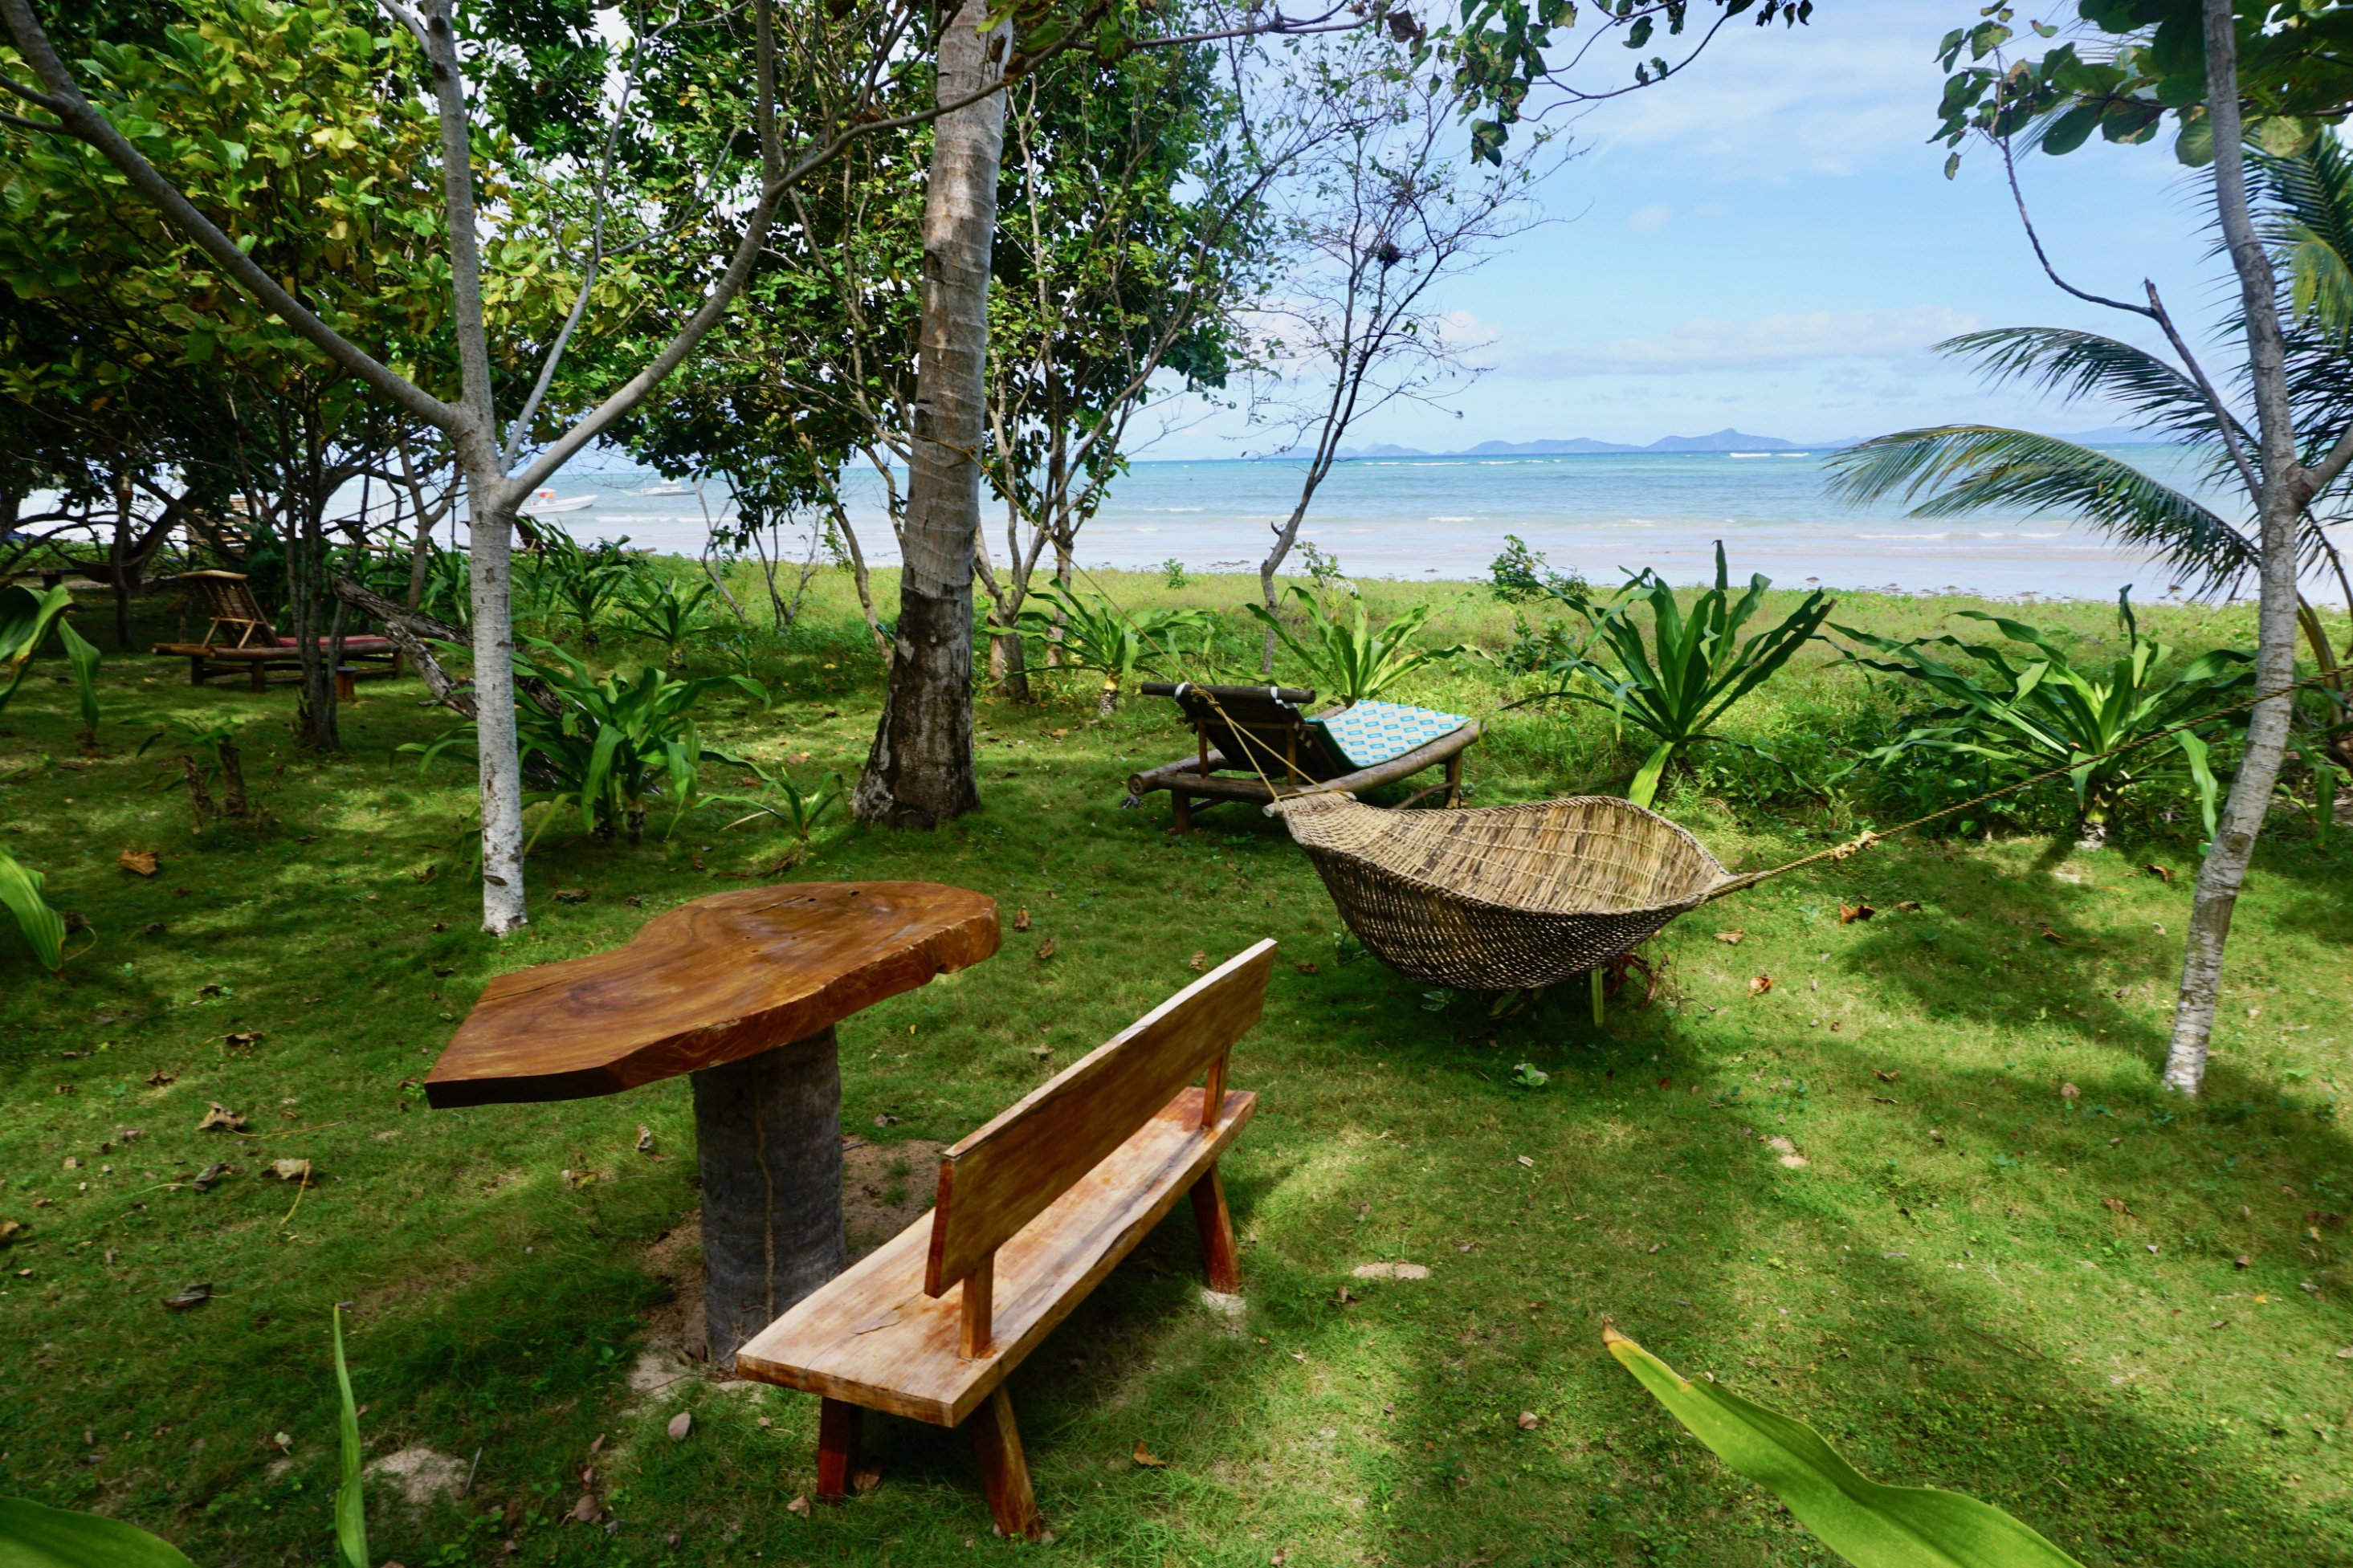 11 remote luxury resorts in the Philippines worth the journey | CNN ...